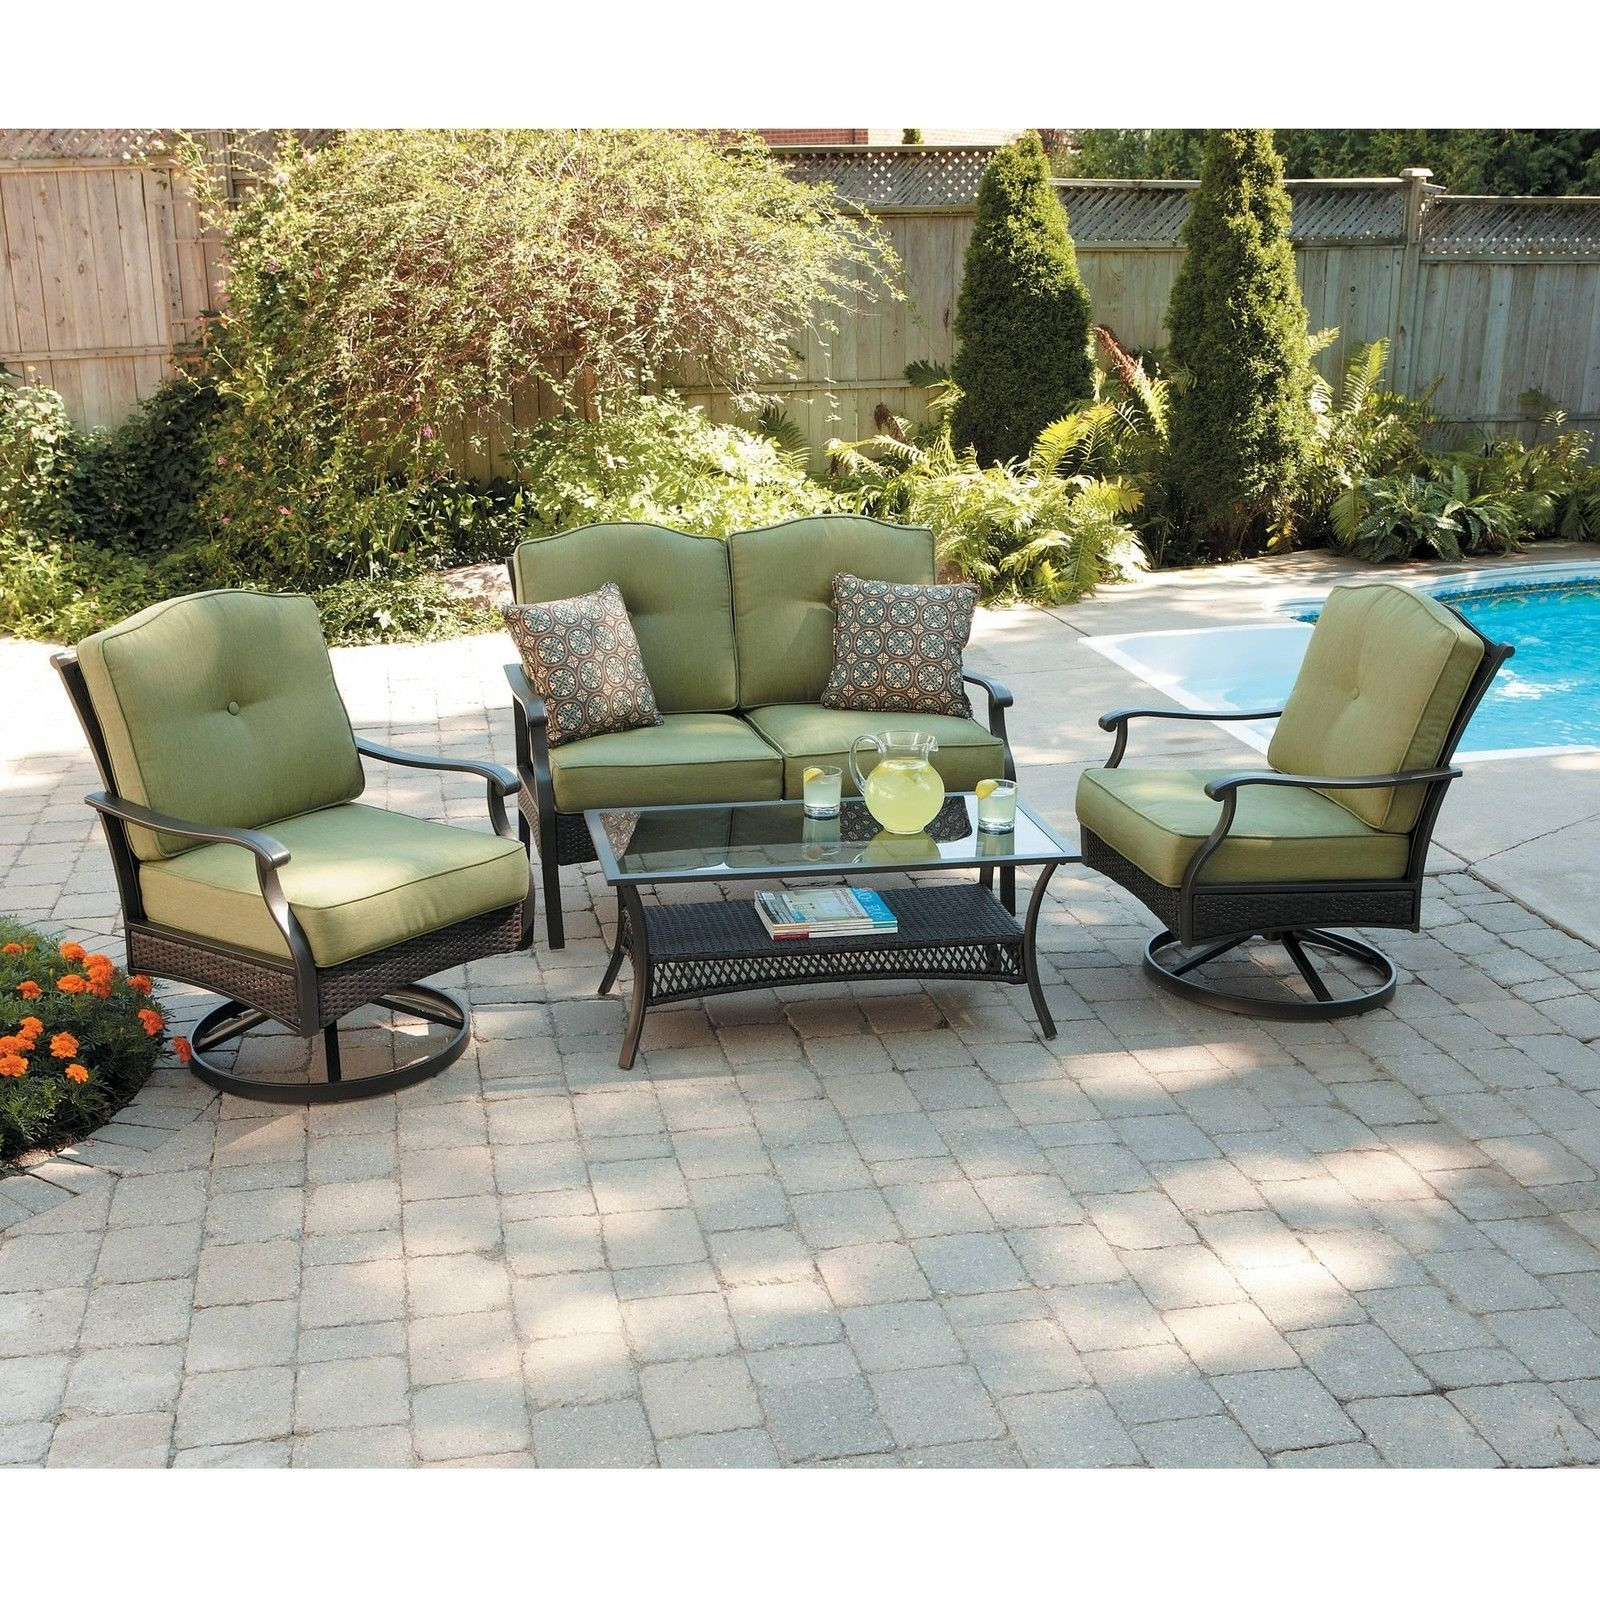 Better Homes And Gardens Providence 4 Piece Patio Conversation Set Pertaining To Well Known Ebay Patio Conversation Sets (View 1 of 15)